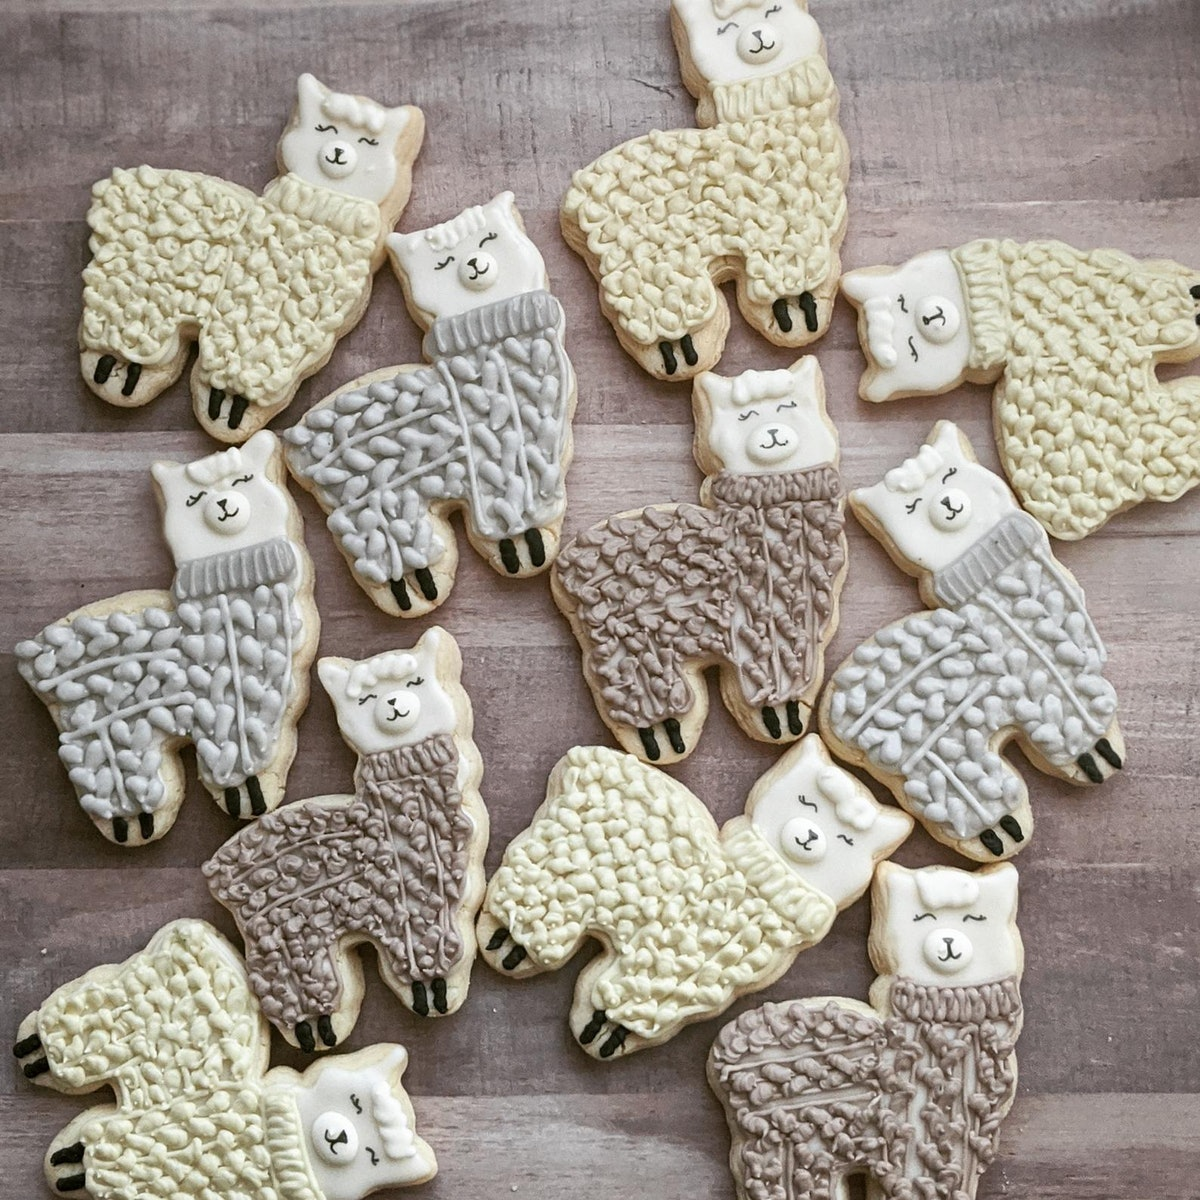 Cookies Inspired by Animals in Knit Sweaters